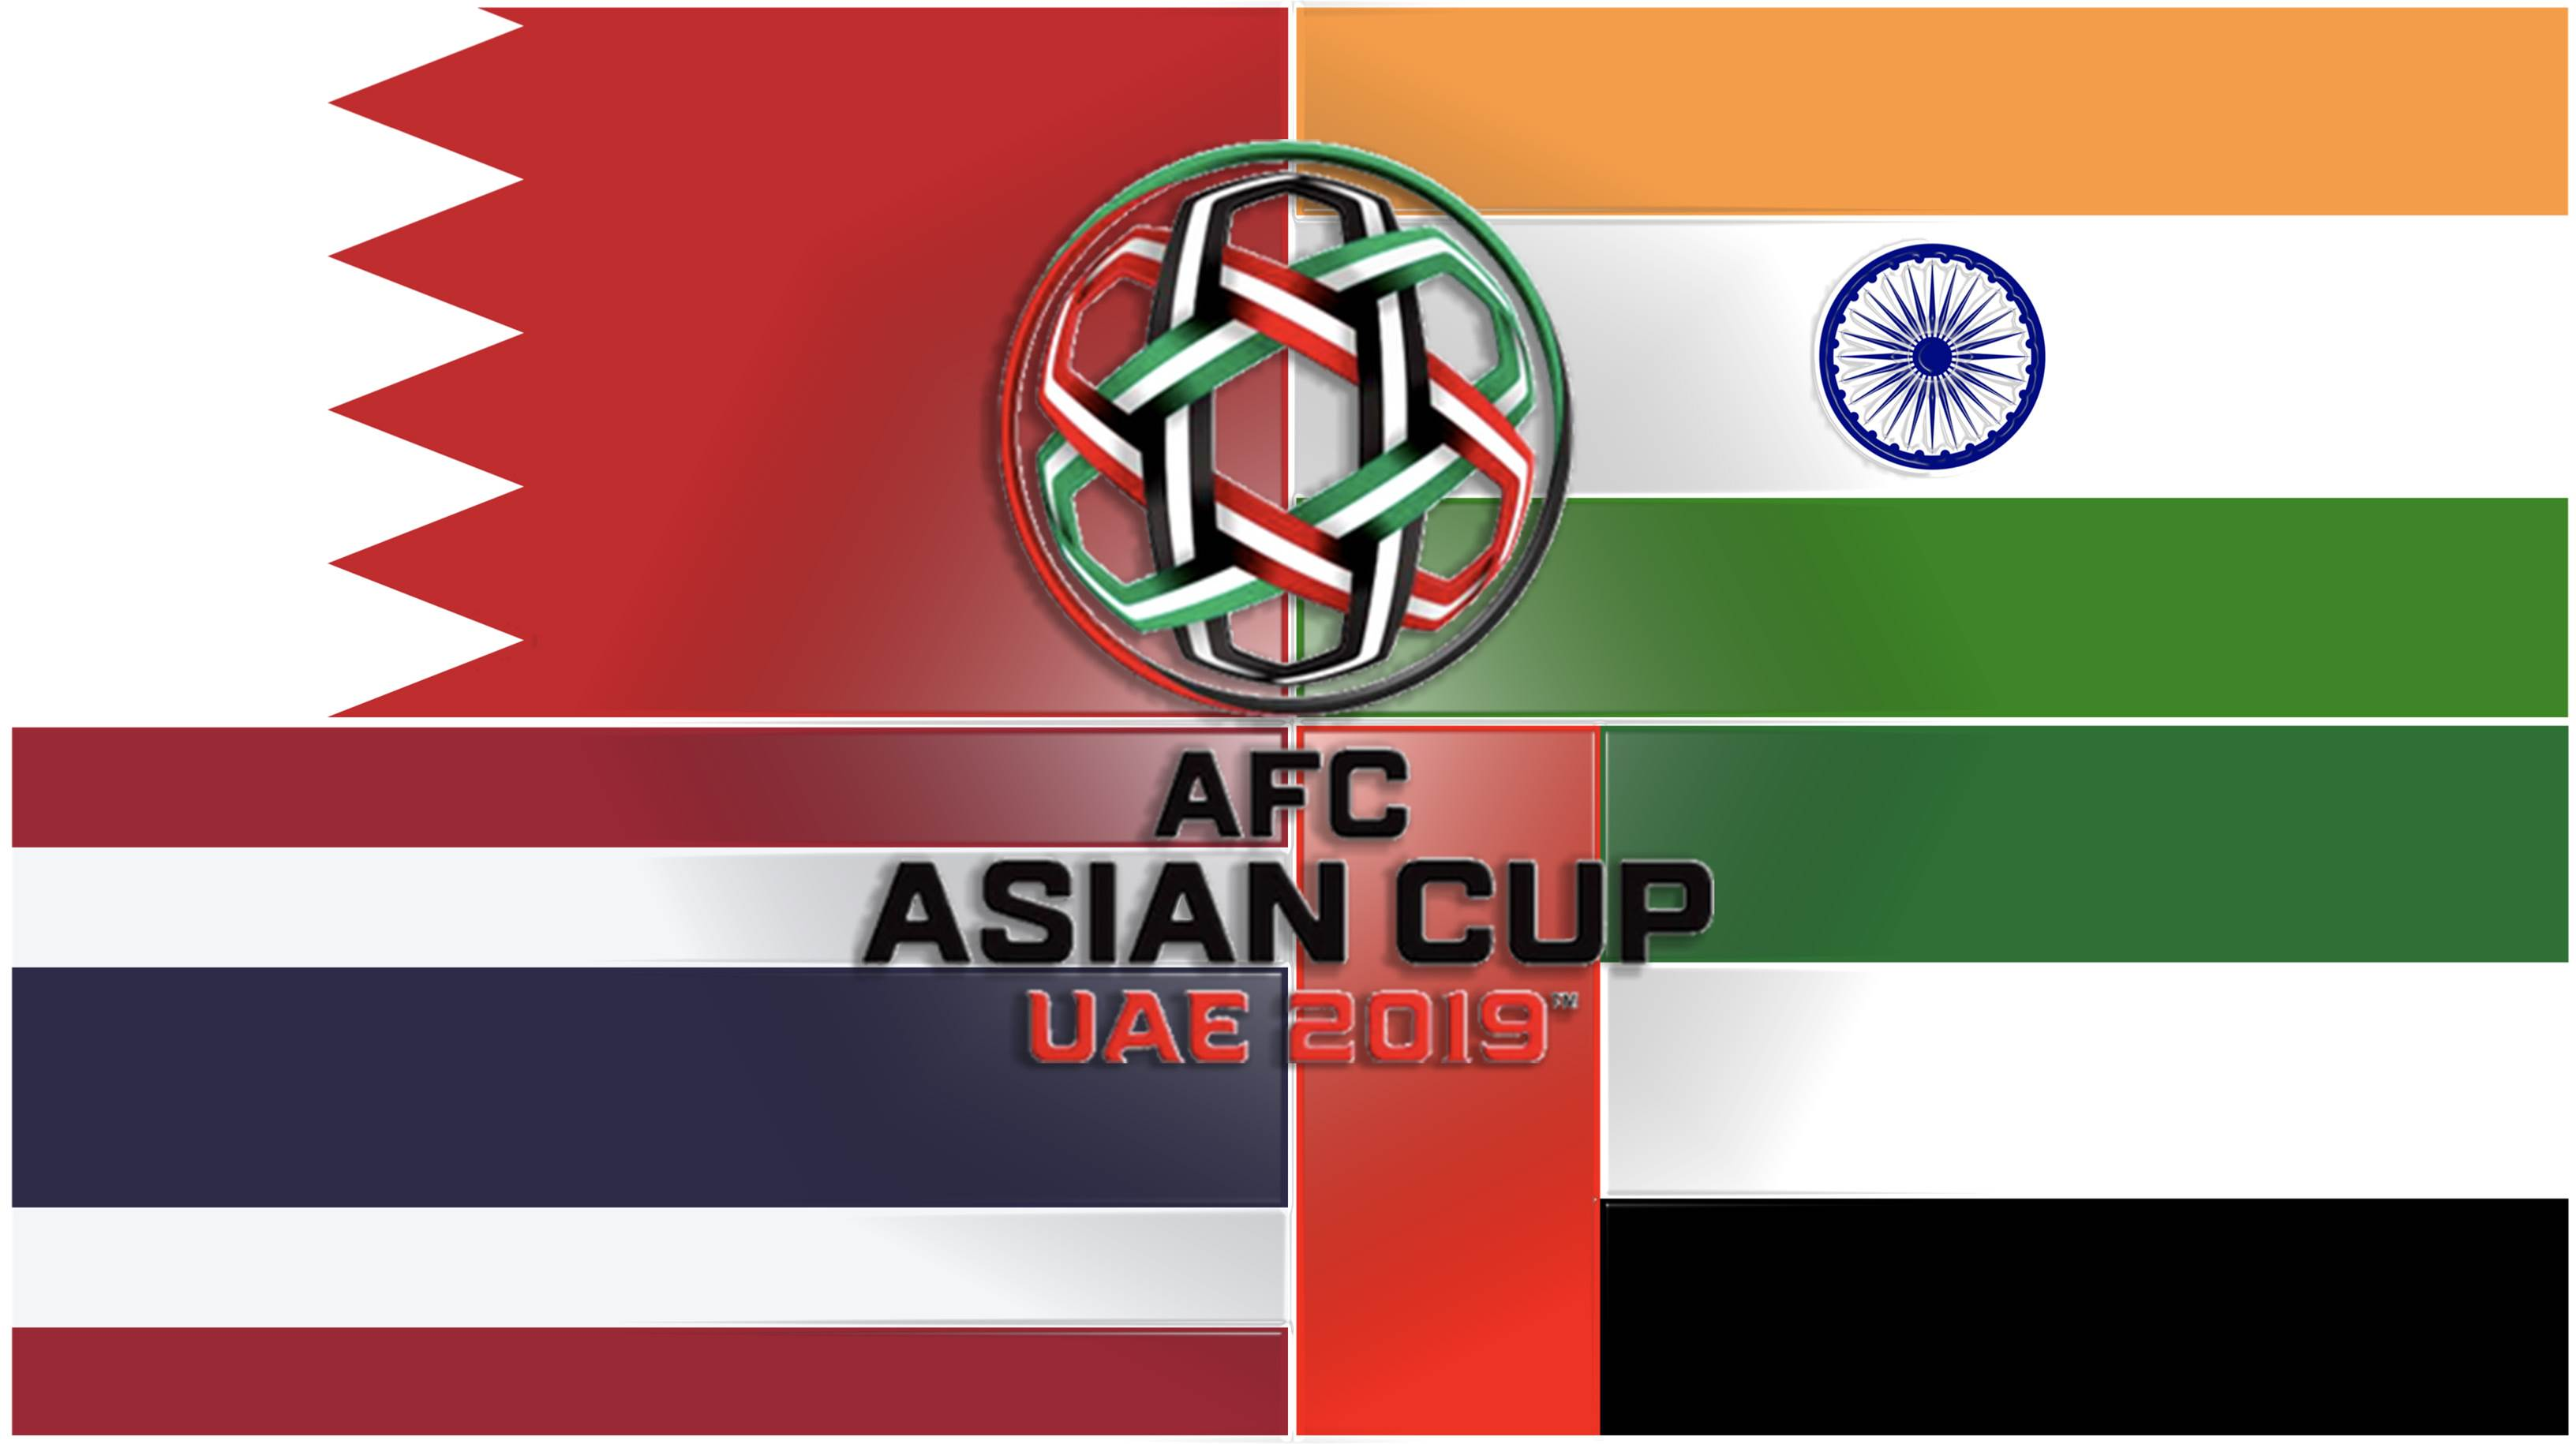 Asian Cup 2019 Preview: All you need to know about Group A